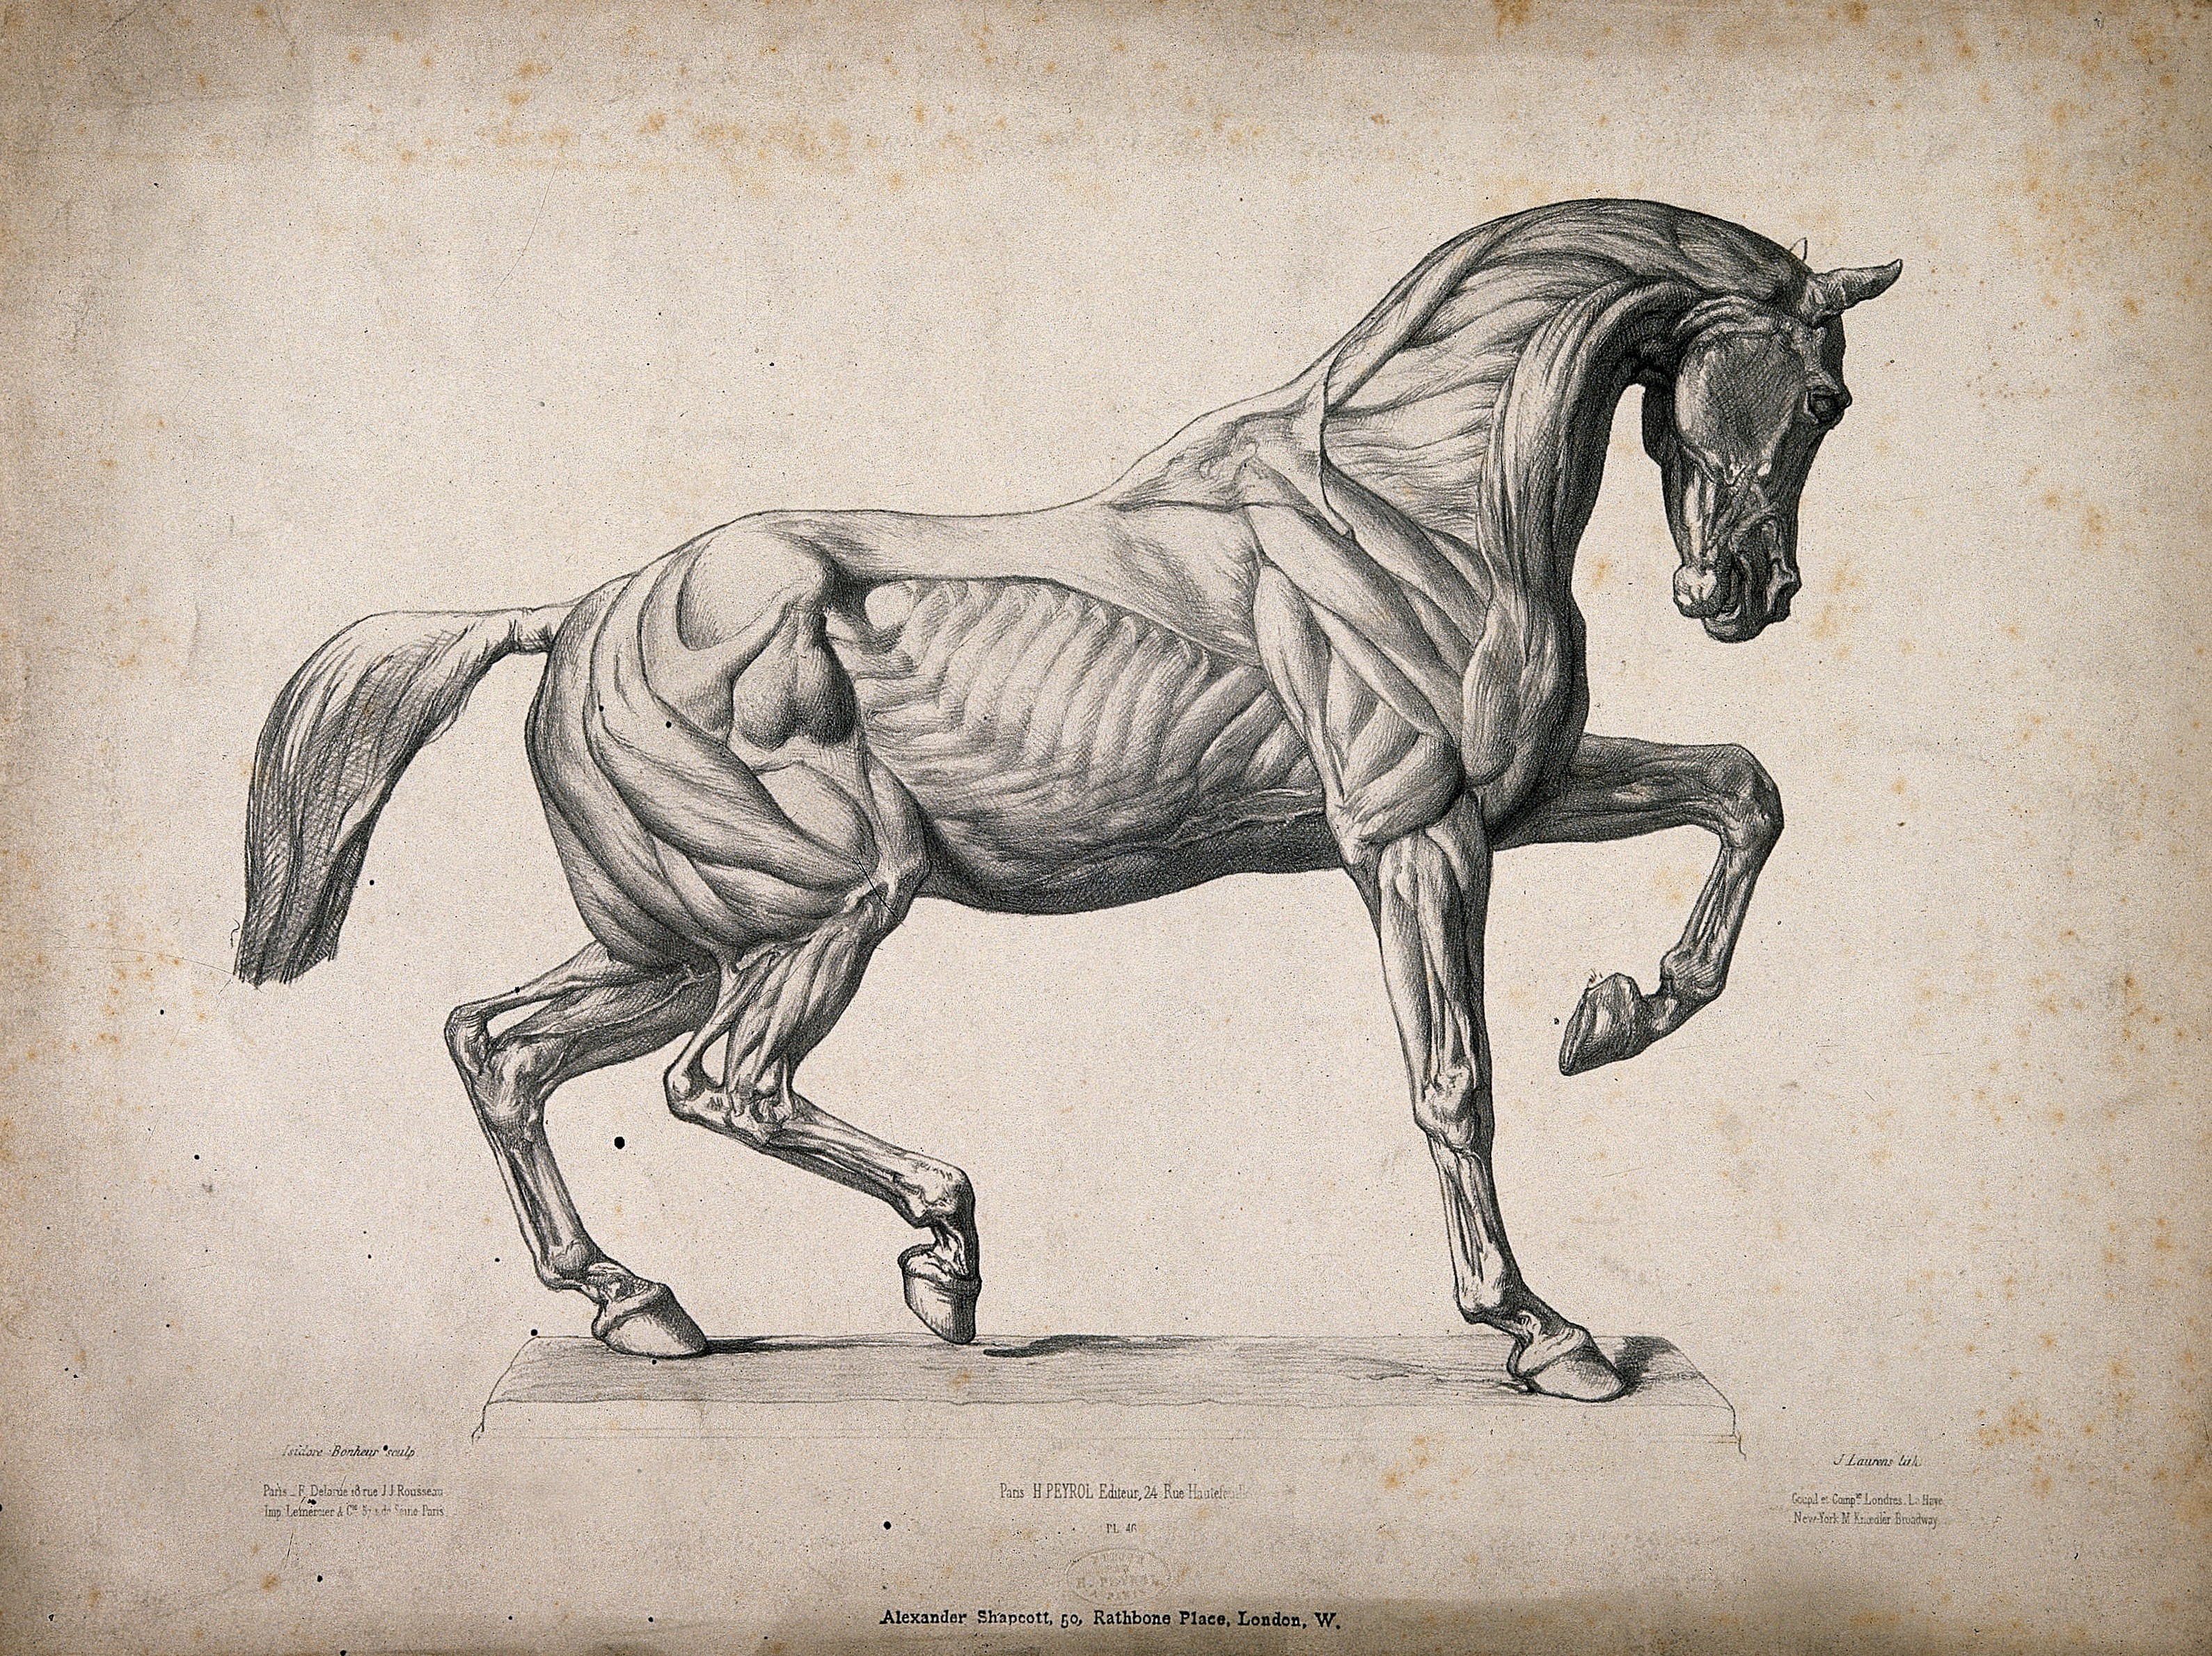 File:Anatomical engraving of a horse. Wellcome V0016883.jpg ...